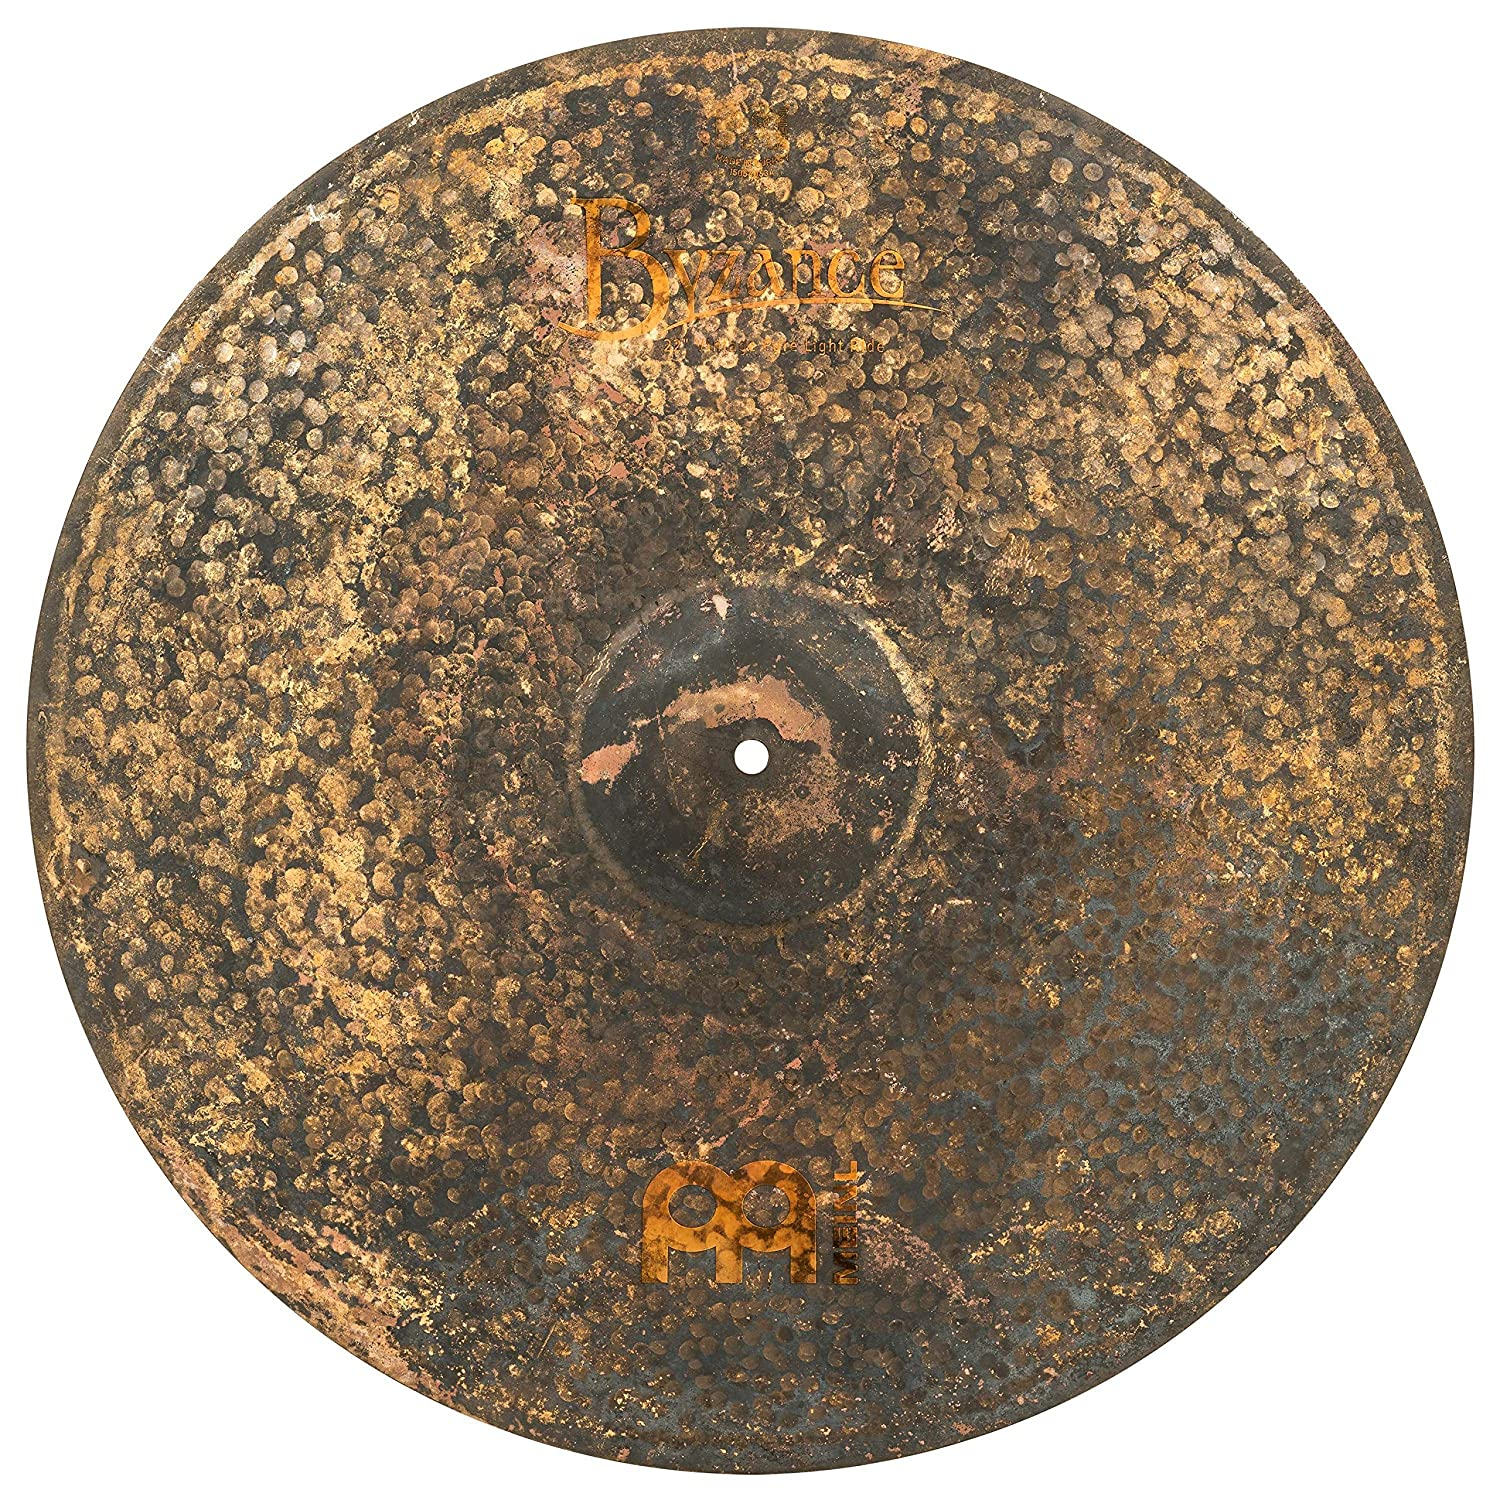 Meinl Cymbals B22VPLR Byzance 22-Inch Vintage Pure Light Ride Cymbal (VIDEO) Meinl USA L.C.